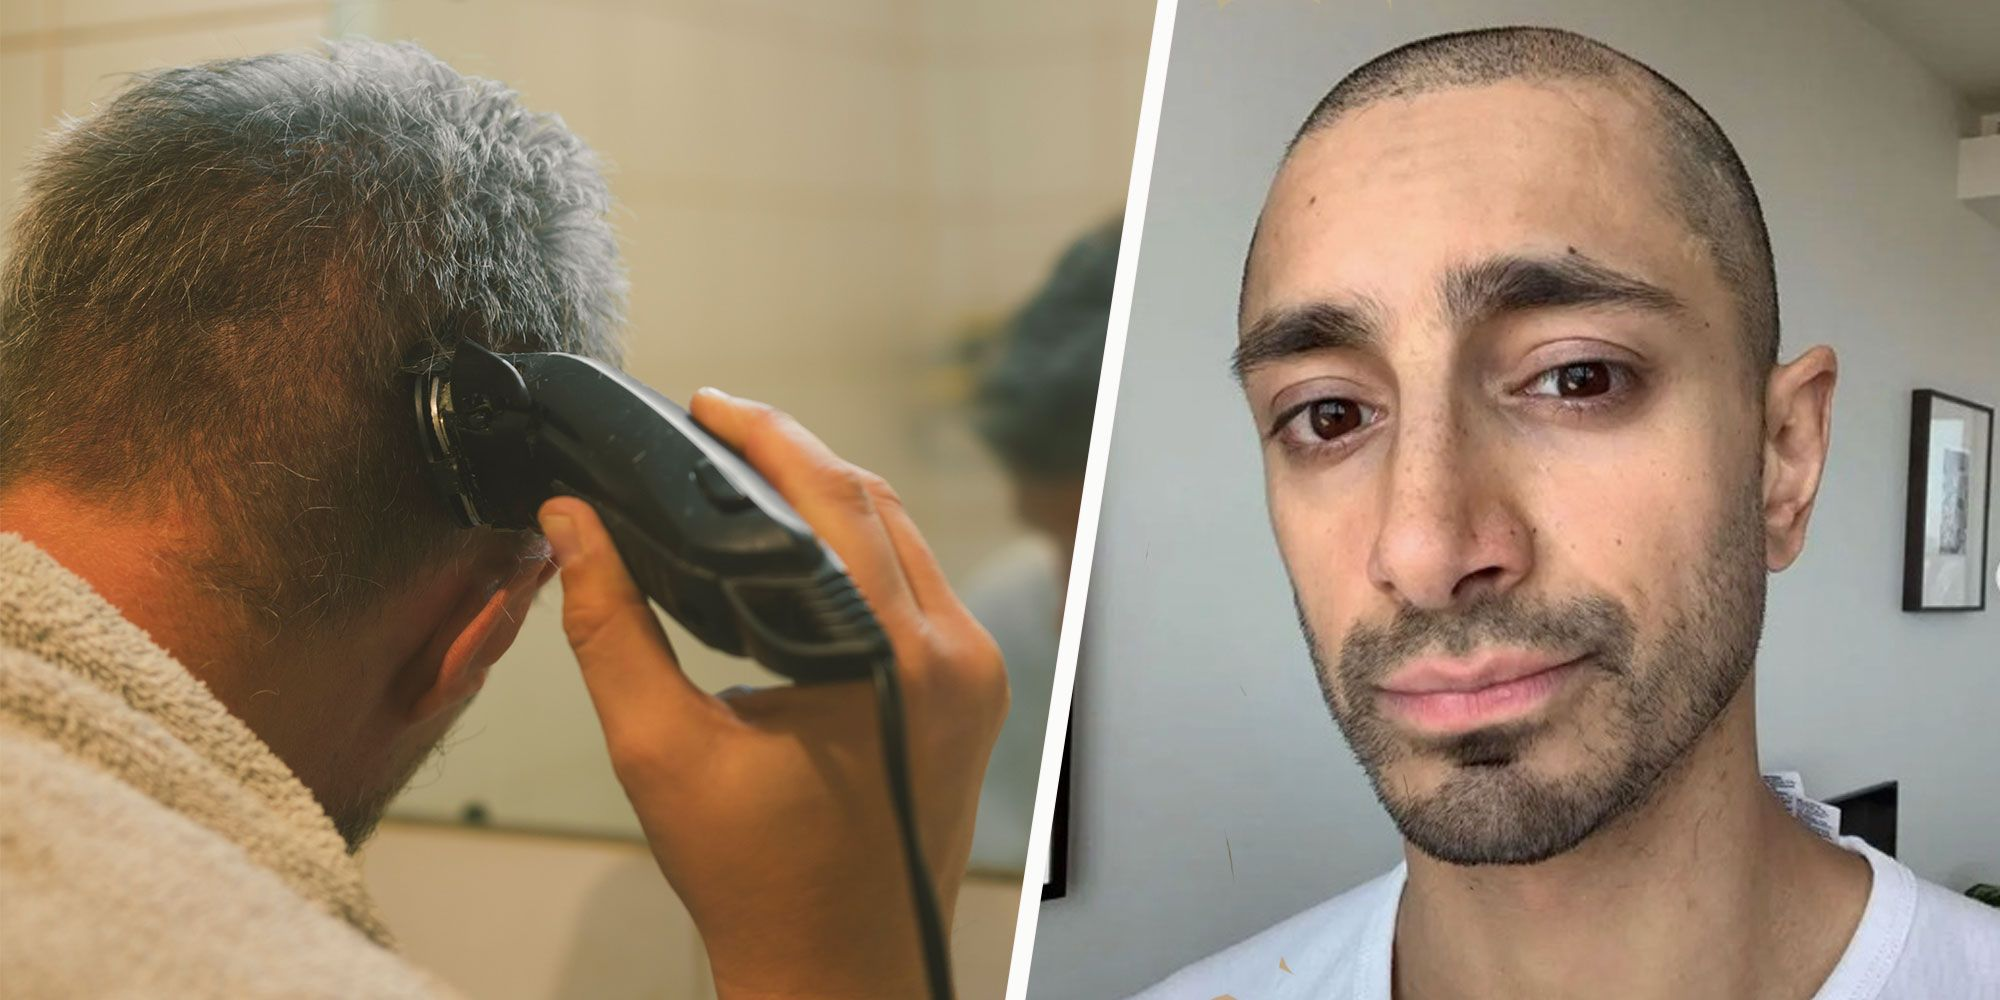 A Top Barber Shares His 5-step Guide to Giving Yourself a Buzzcut at Home